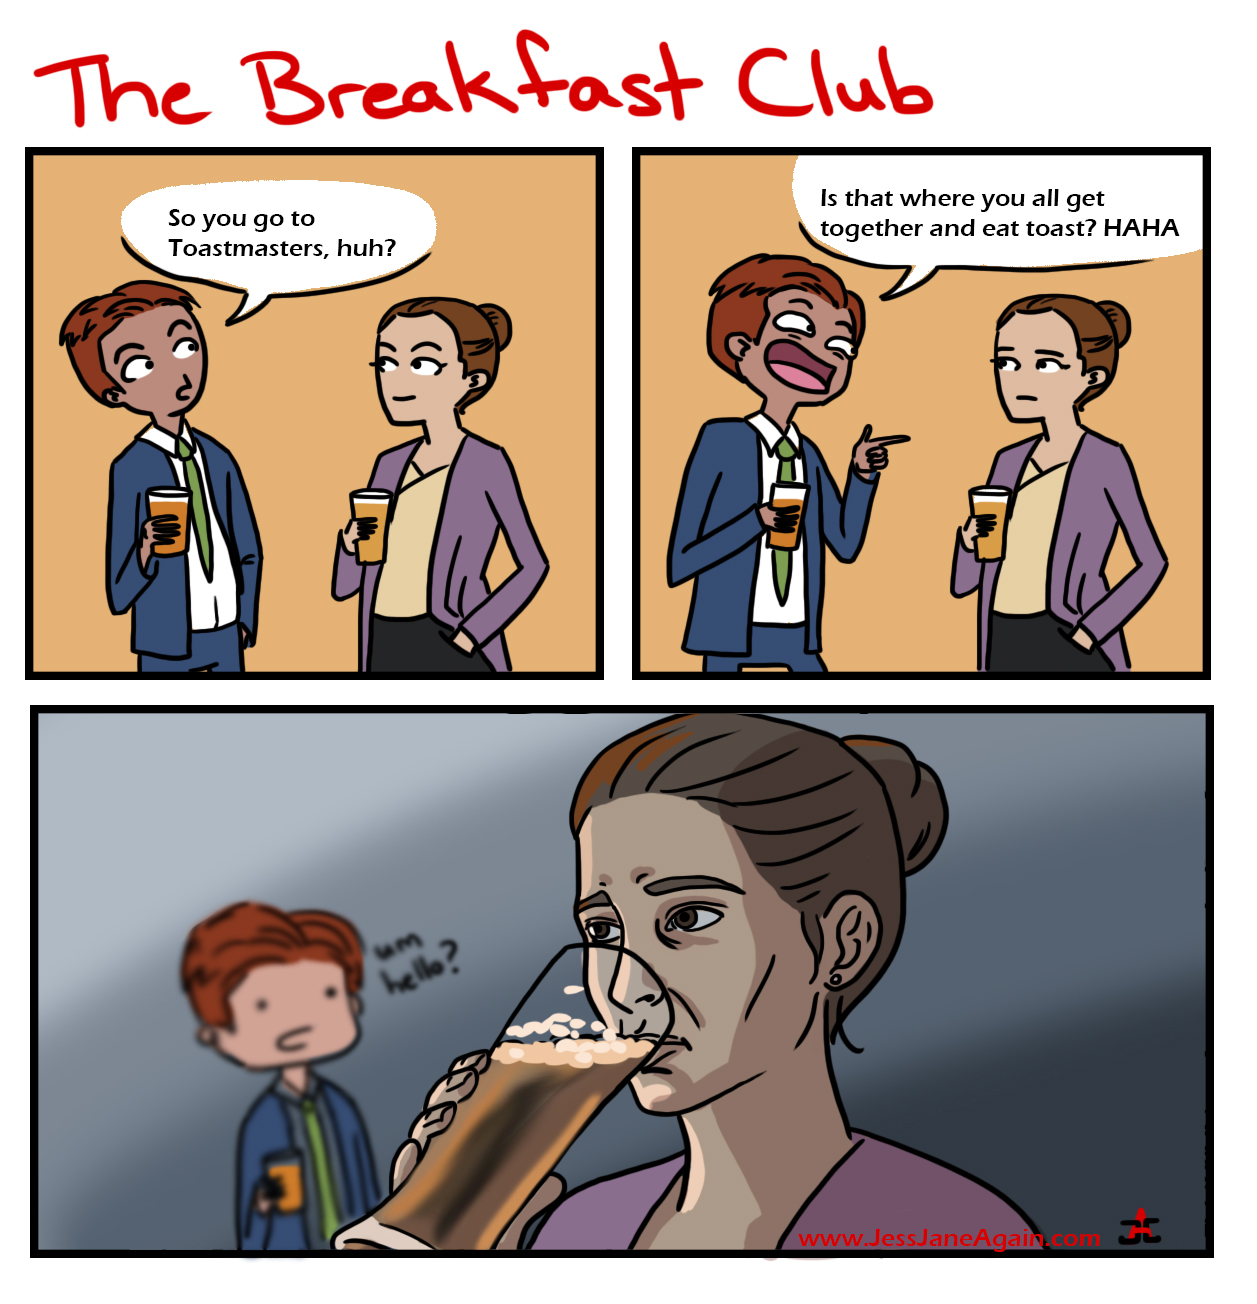 Toastmasters the breakfast club